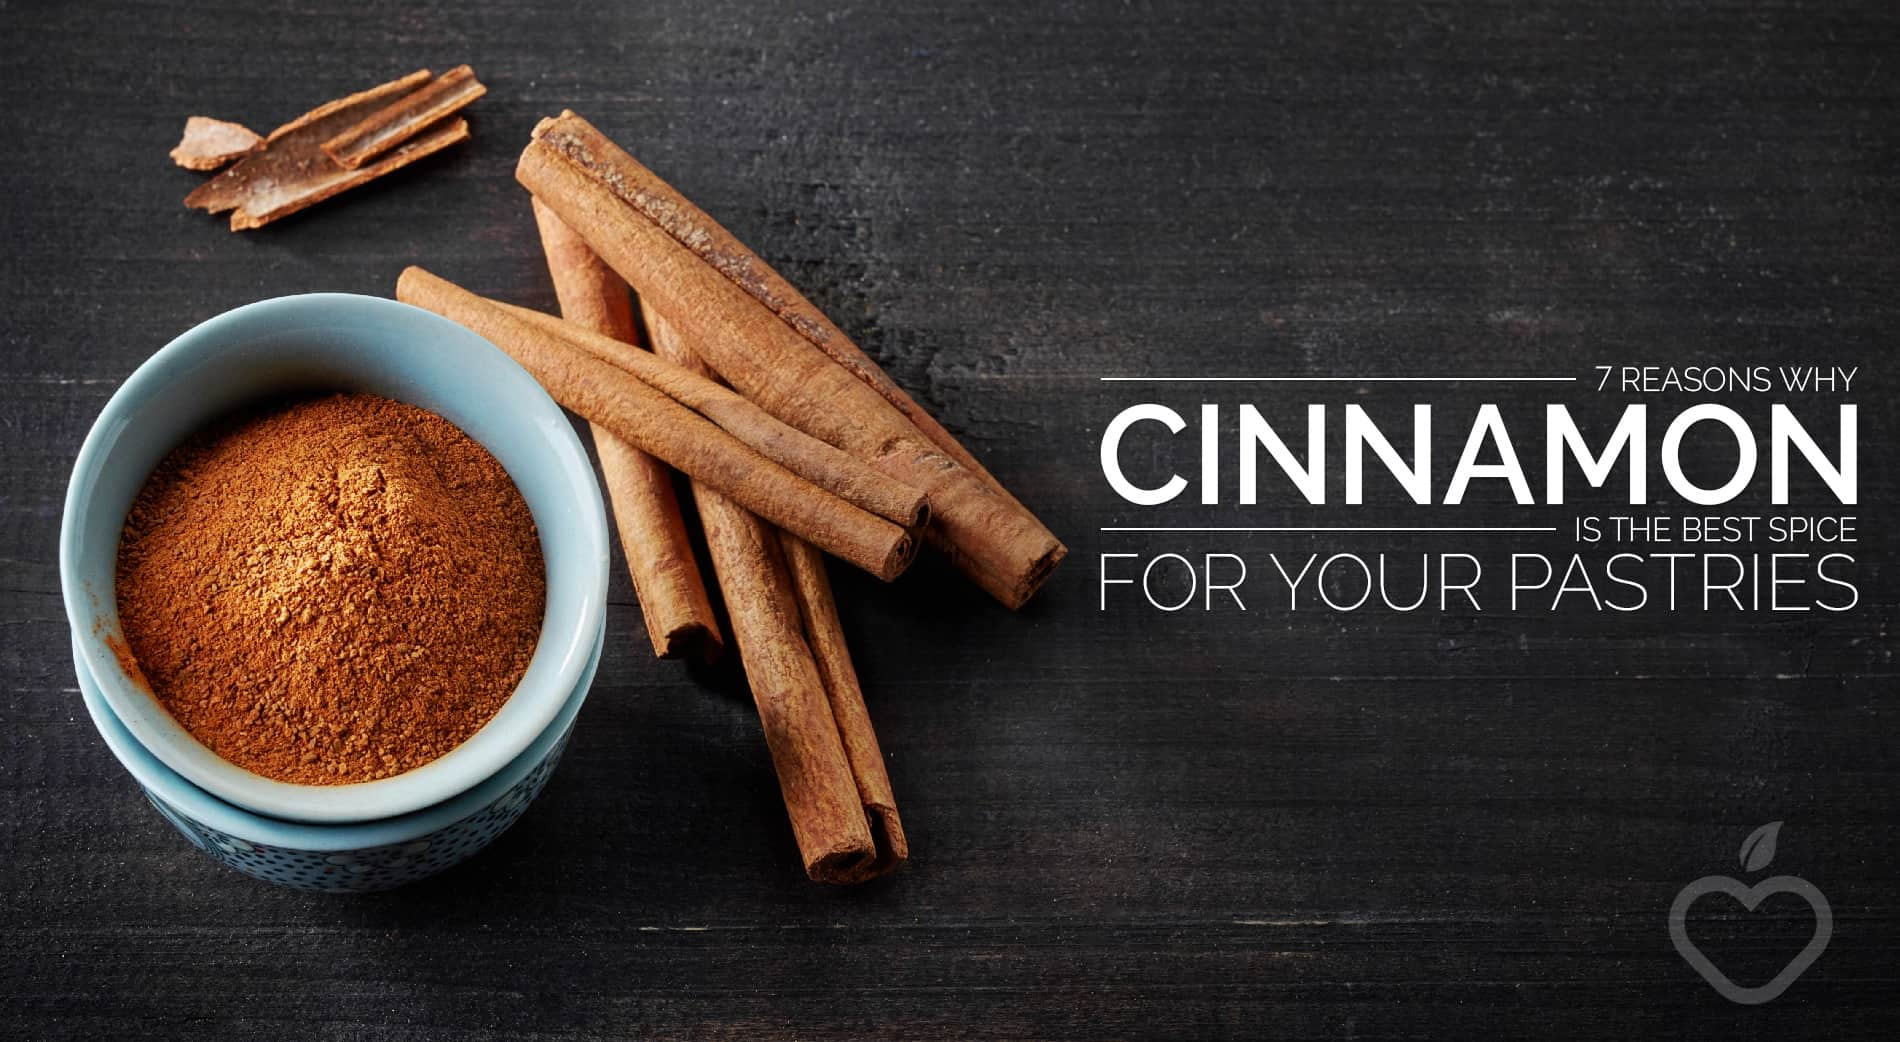 Cinnamon Image Design 1 - 7 Reasons Why Cinnamon Is The Best Spice For Your Pastries